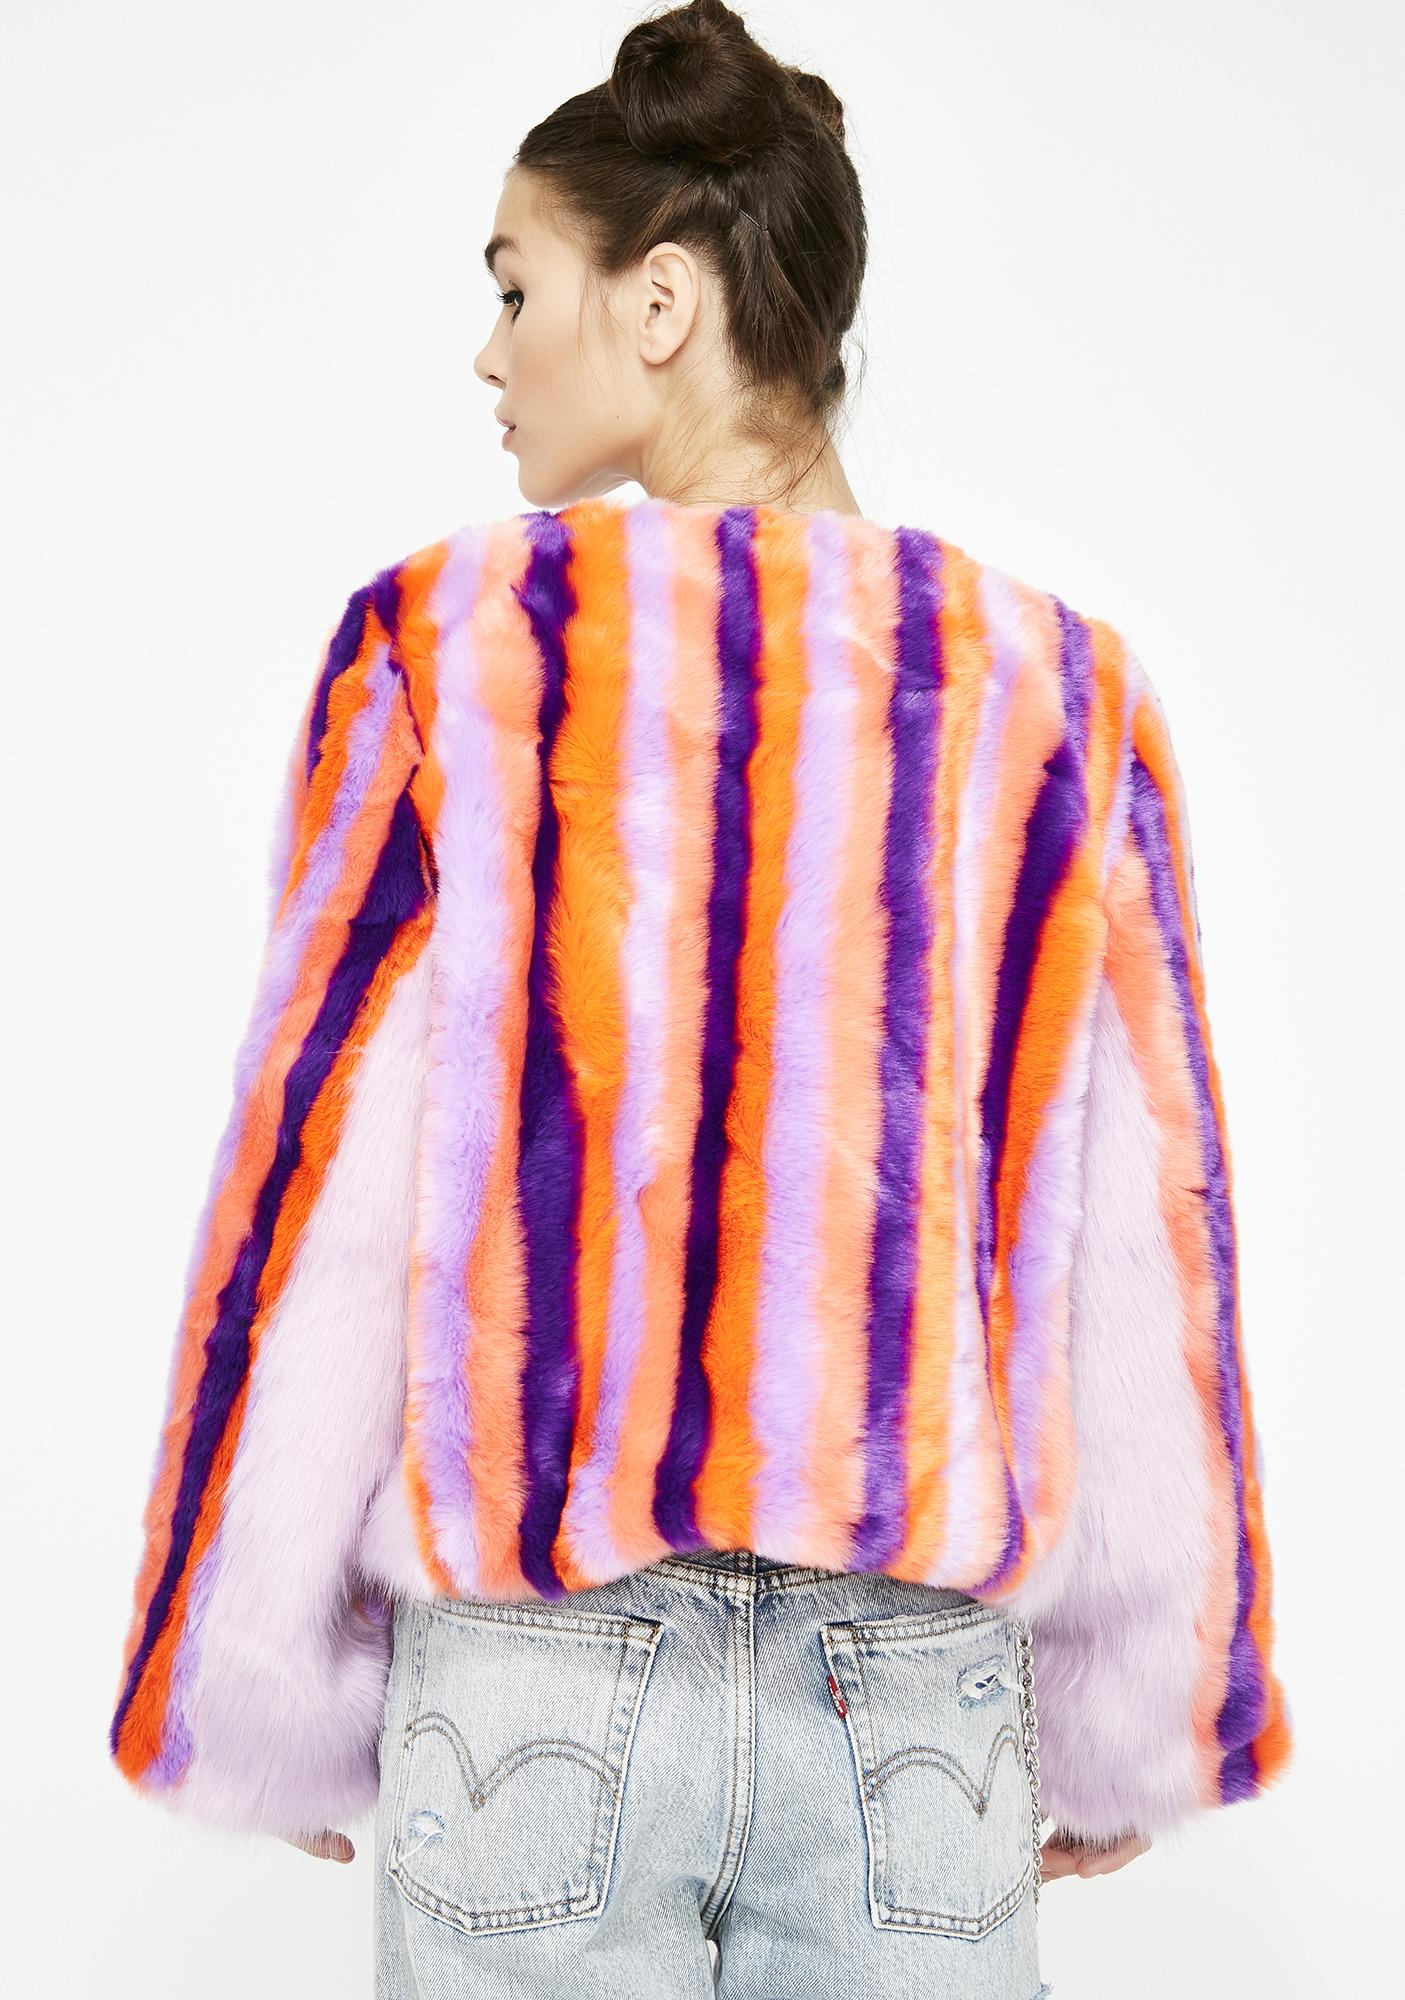 Rave Ready Fuzzy Coat